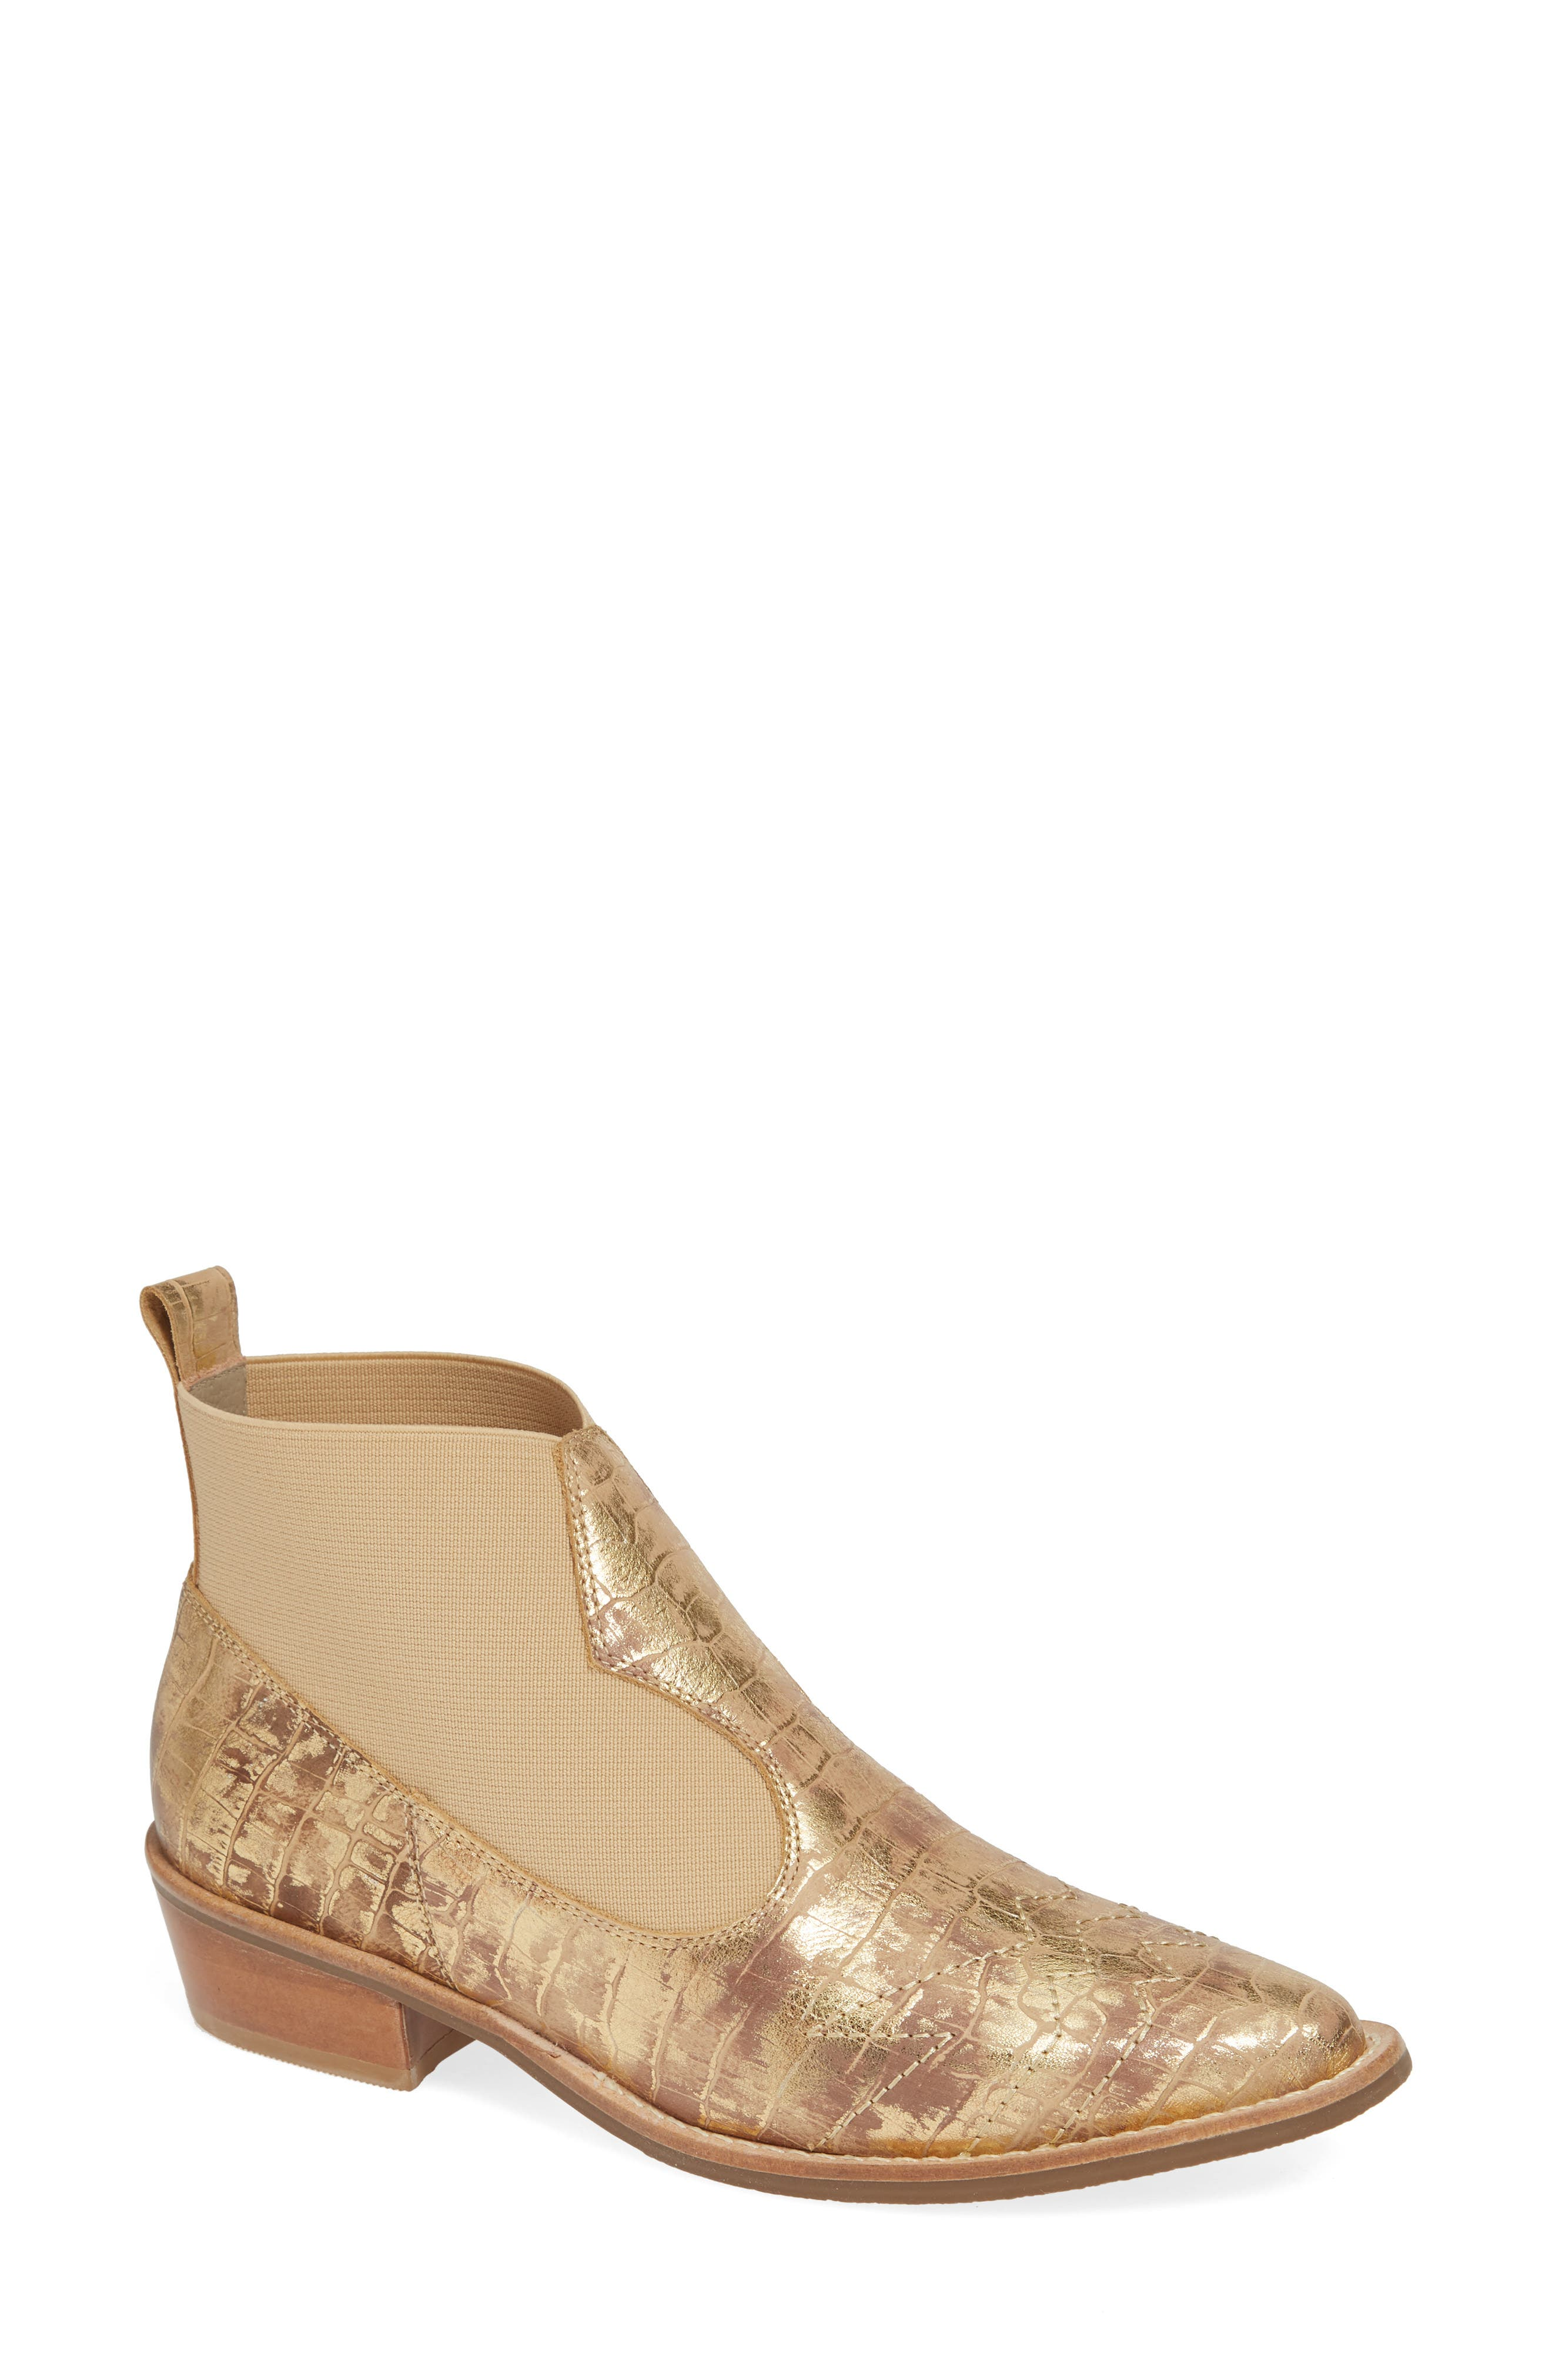 MATISSE Sweet Jane Bootie in Gold Leather